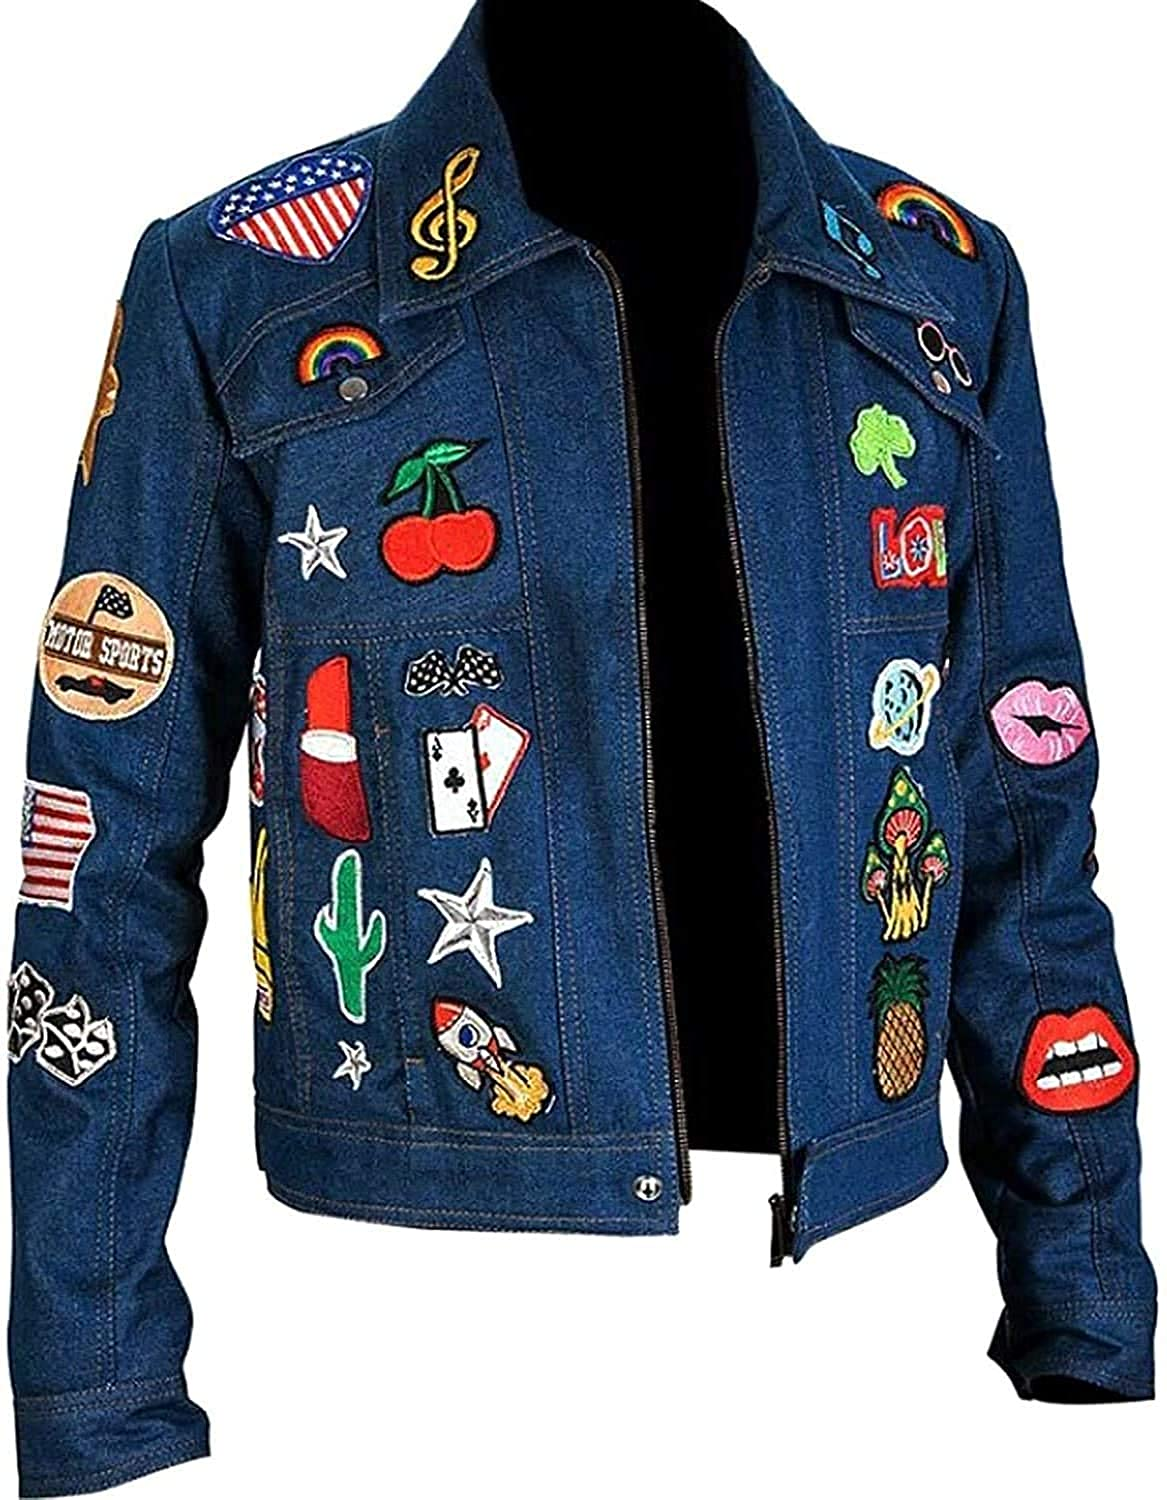 Leatheromatic's New Taron Egerton Jacket Blue Denim with Multiple Patches